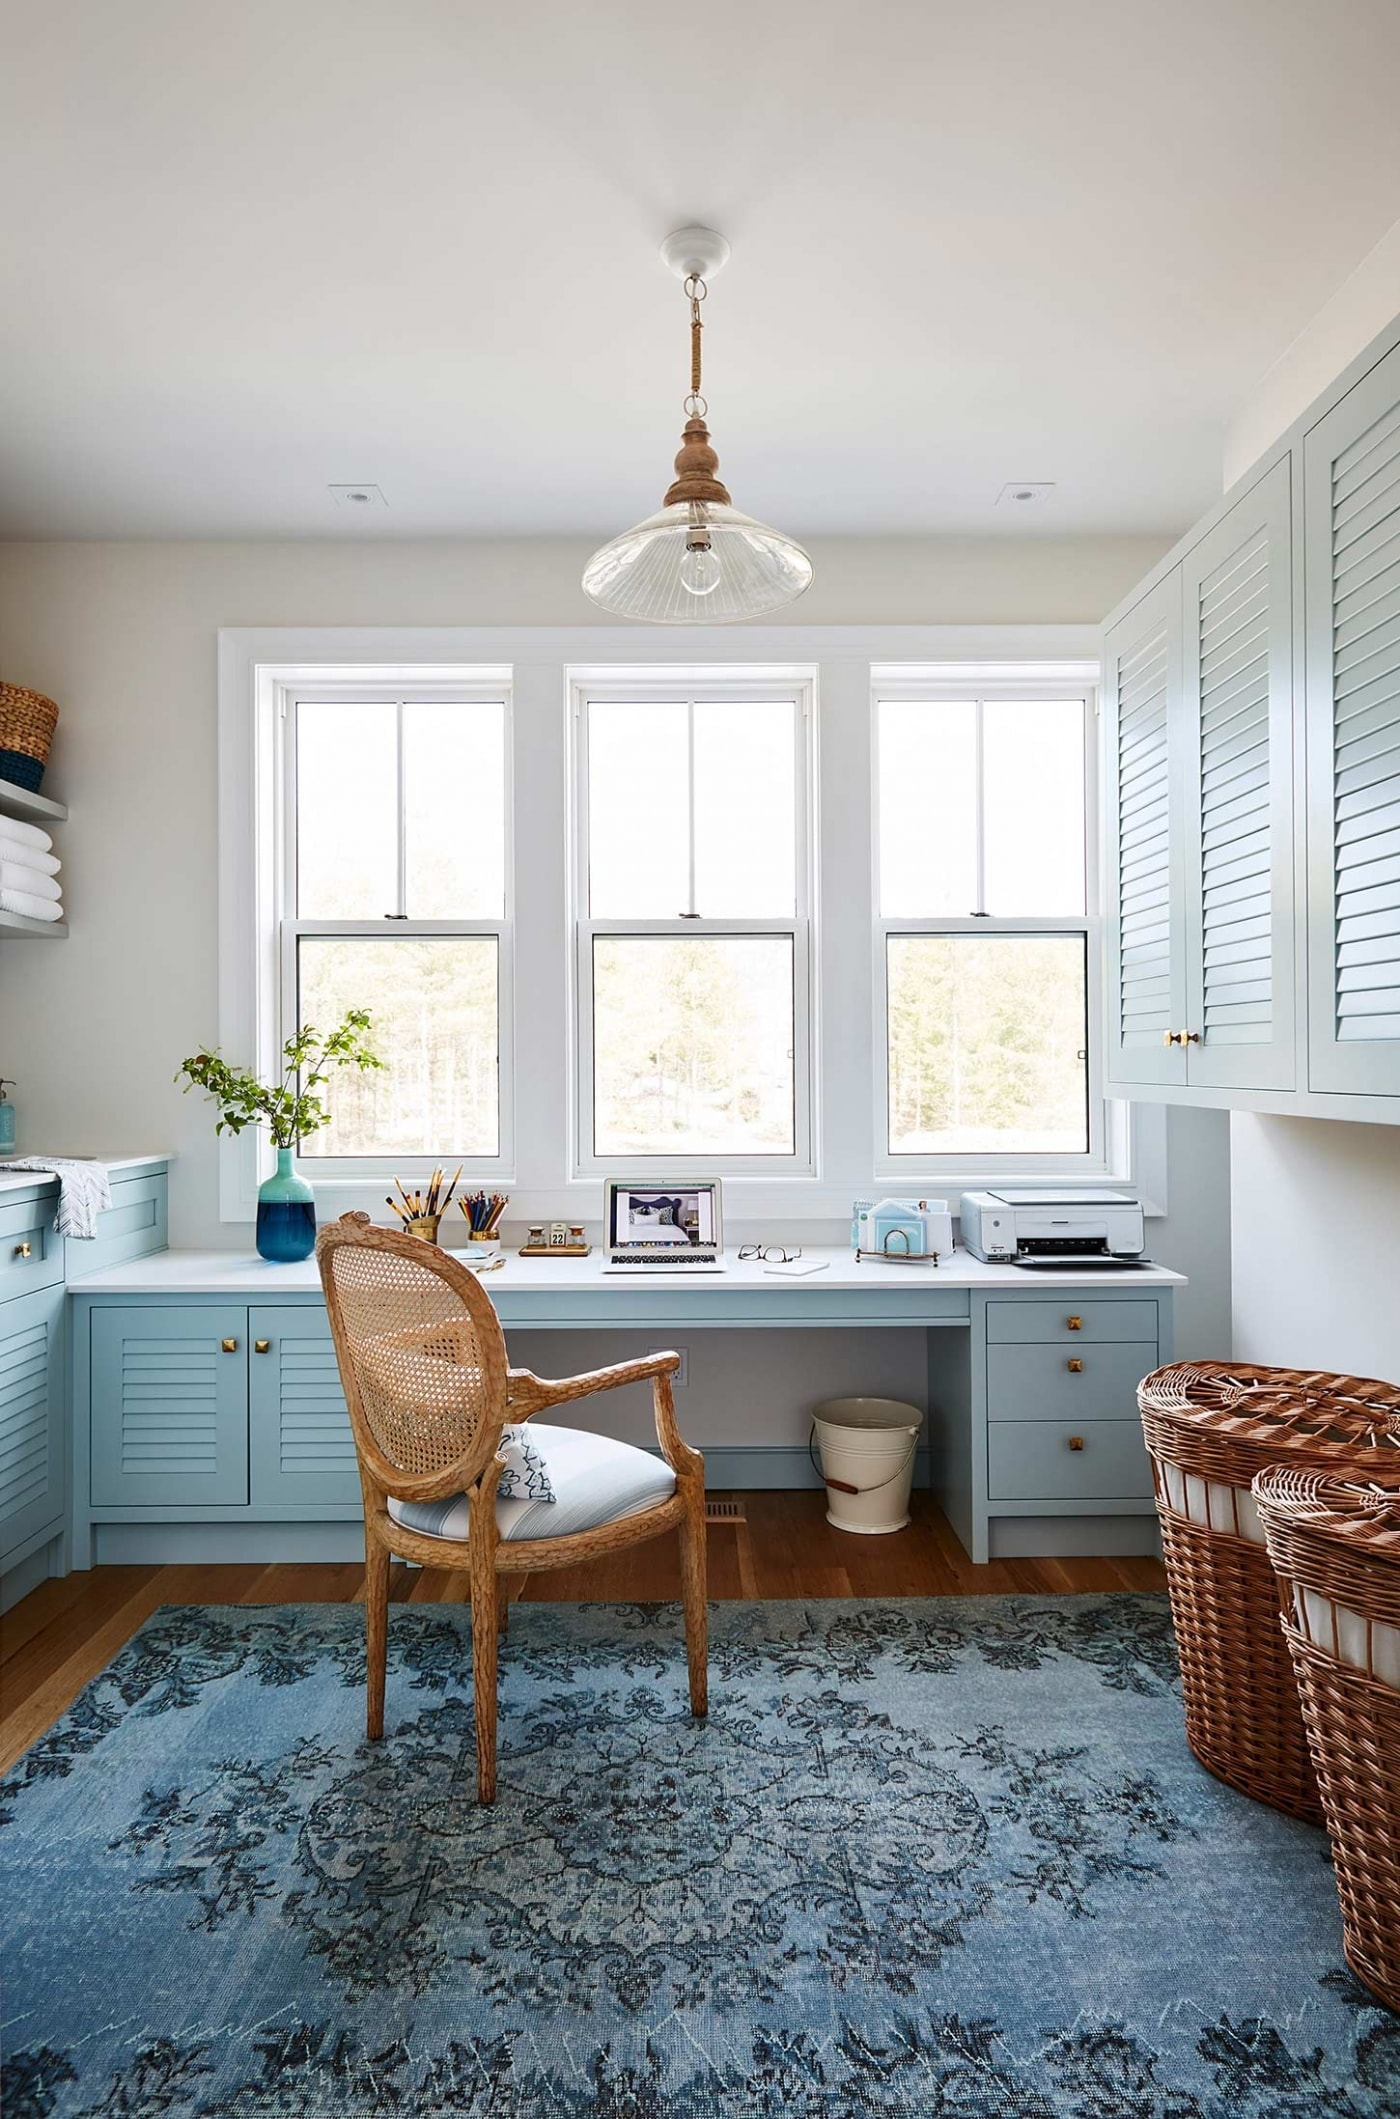 Turquoise and bold blue in a modern farmhouse laundry room by Sarah Richardson. #laundryroom #blue #arearug